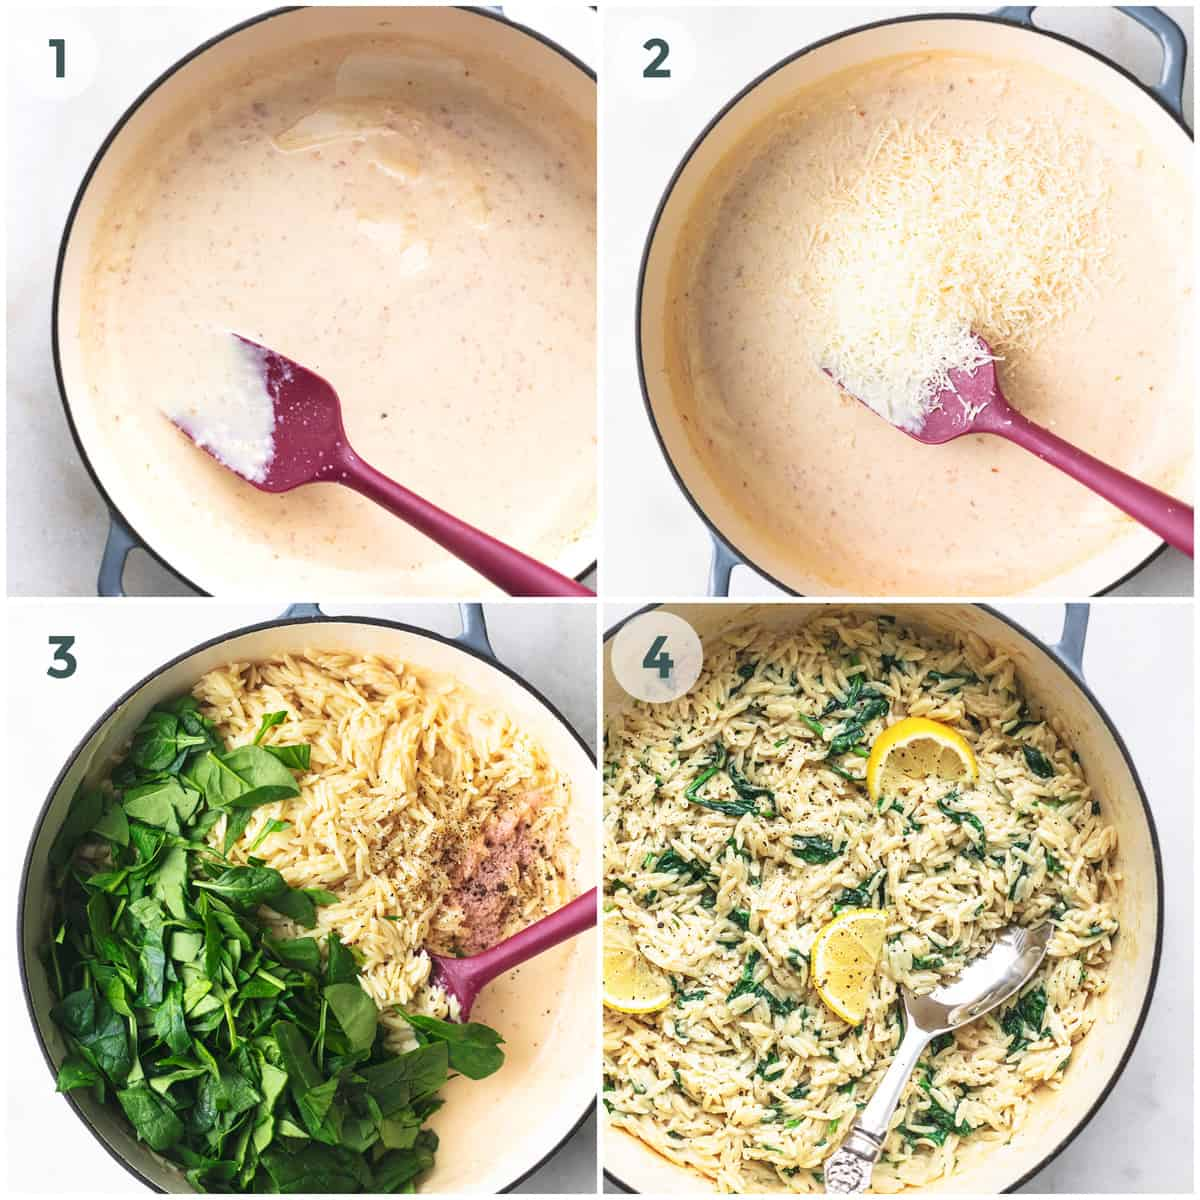 collage of four images showing preparation of cheesy orzo pasta dish